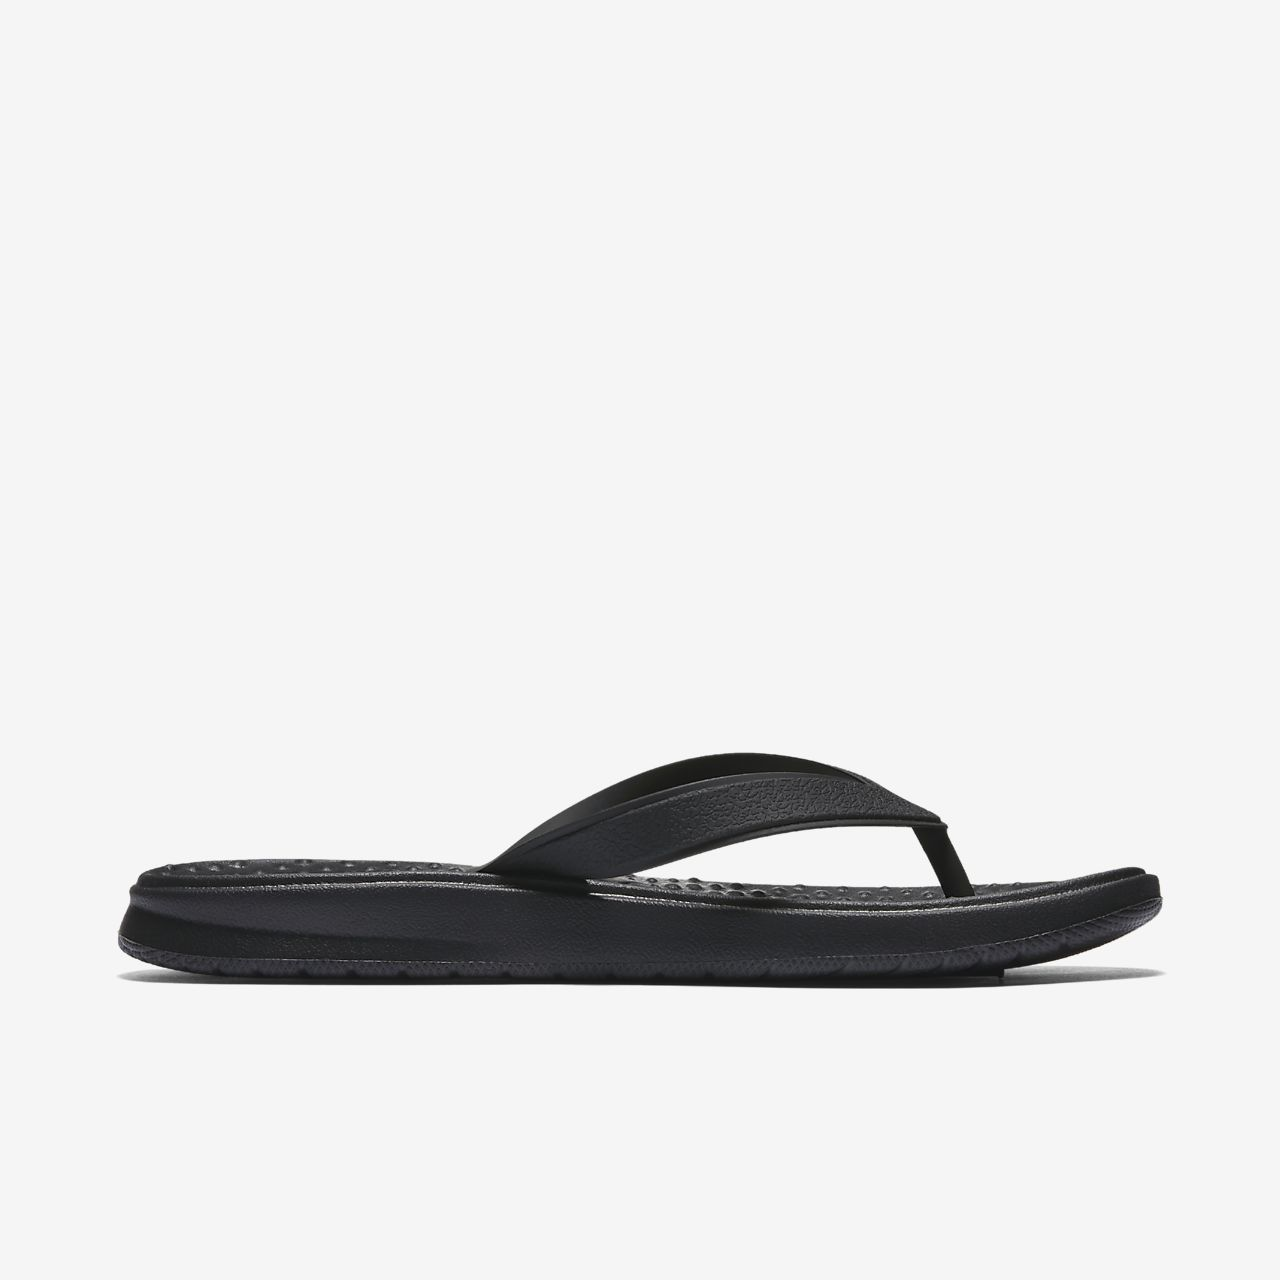 Tong Nike Solay pour Femme